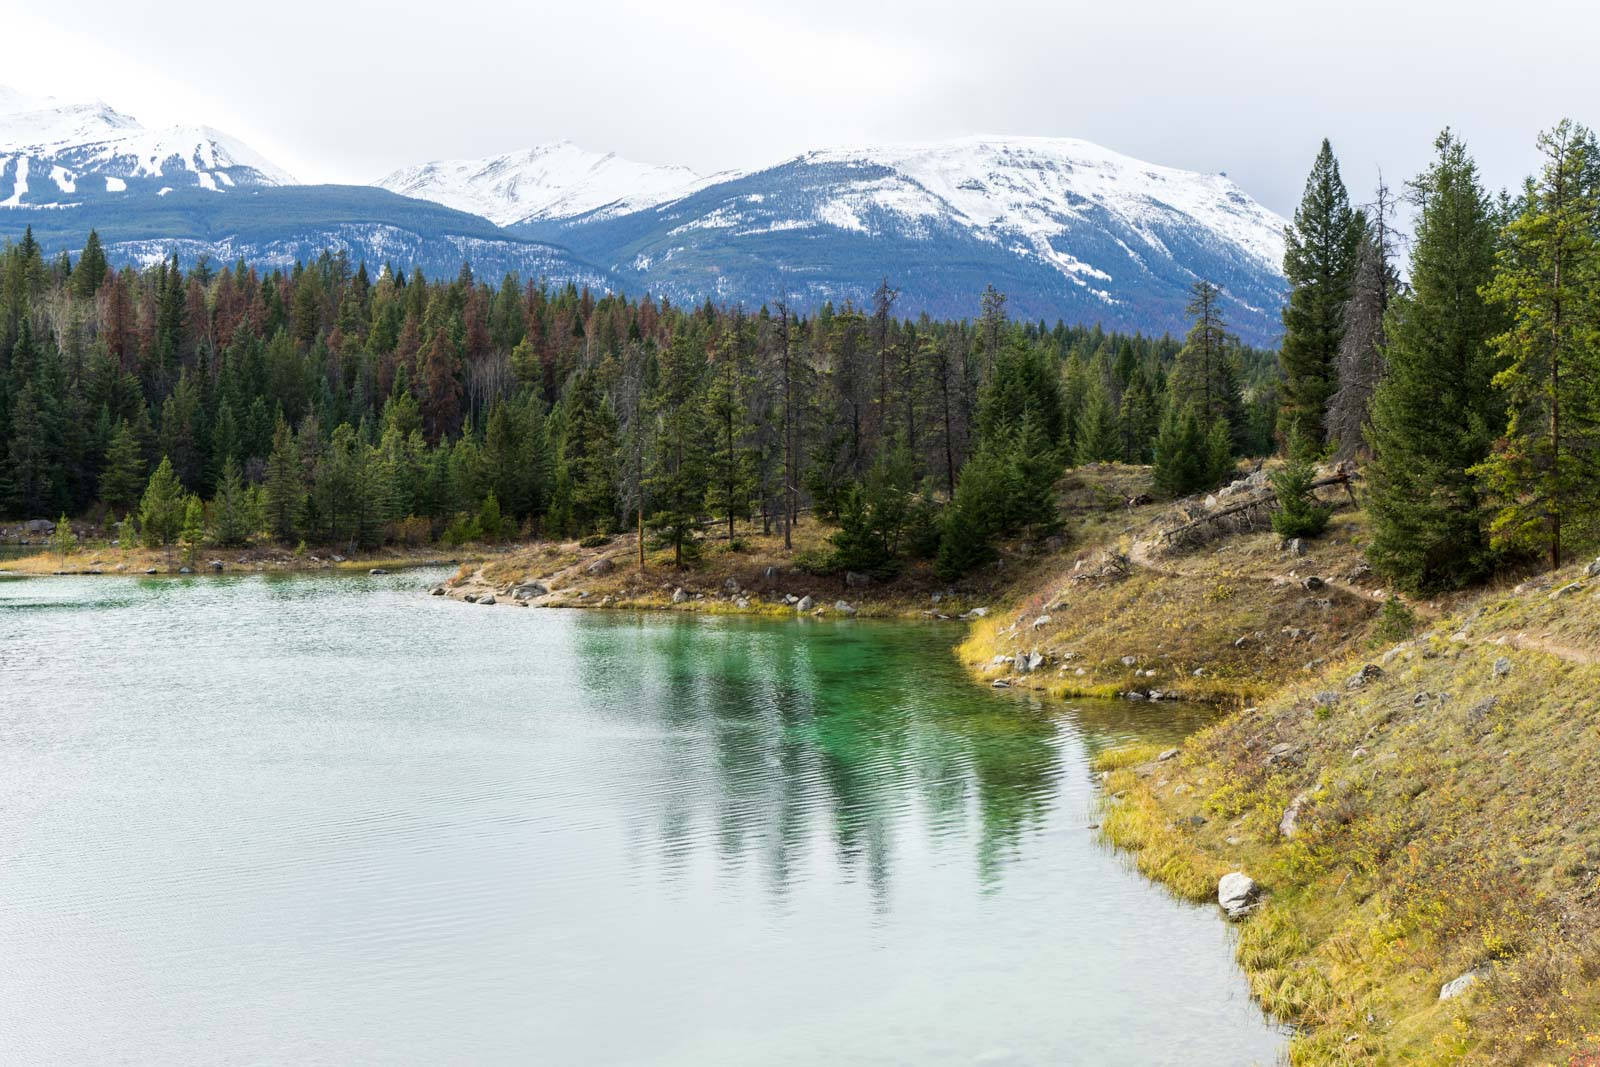 Valley of the Five Lakes, Jasper, Alberta, Canada